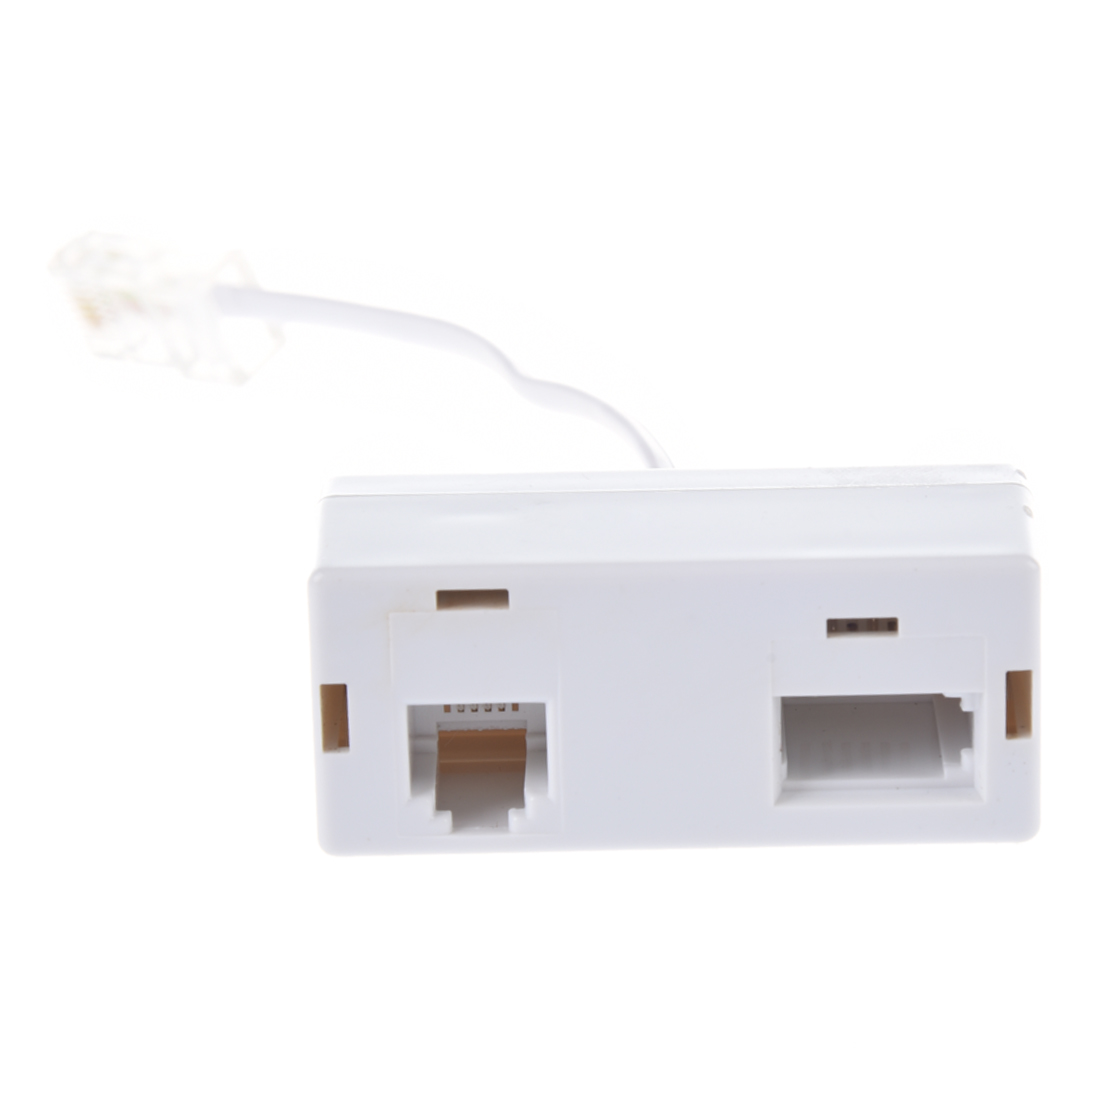 Rj45 To Rj11 Converter Wiring Diagram Cat5 Cat6 Wire For Connector Dsha New Hot Plug Bt Secondary Splitter Telephone Using